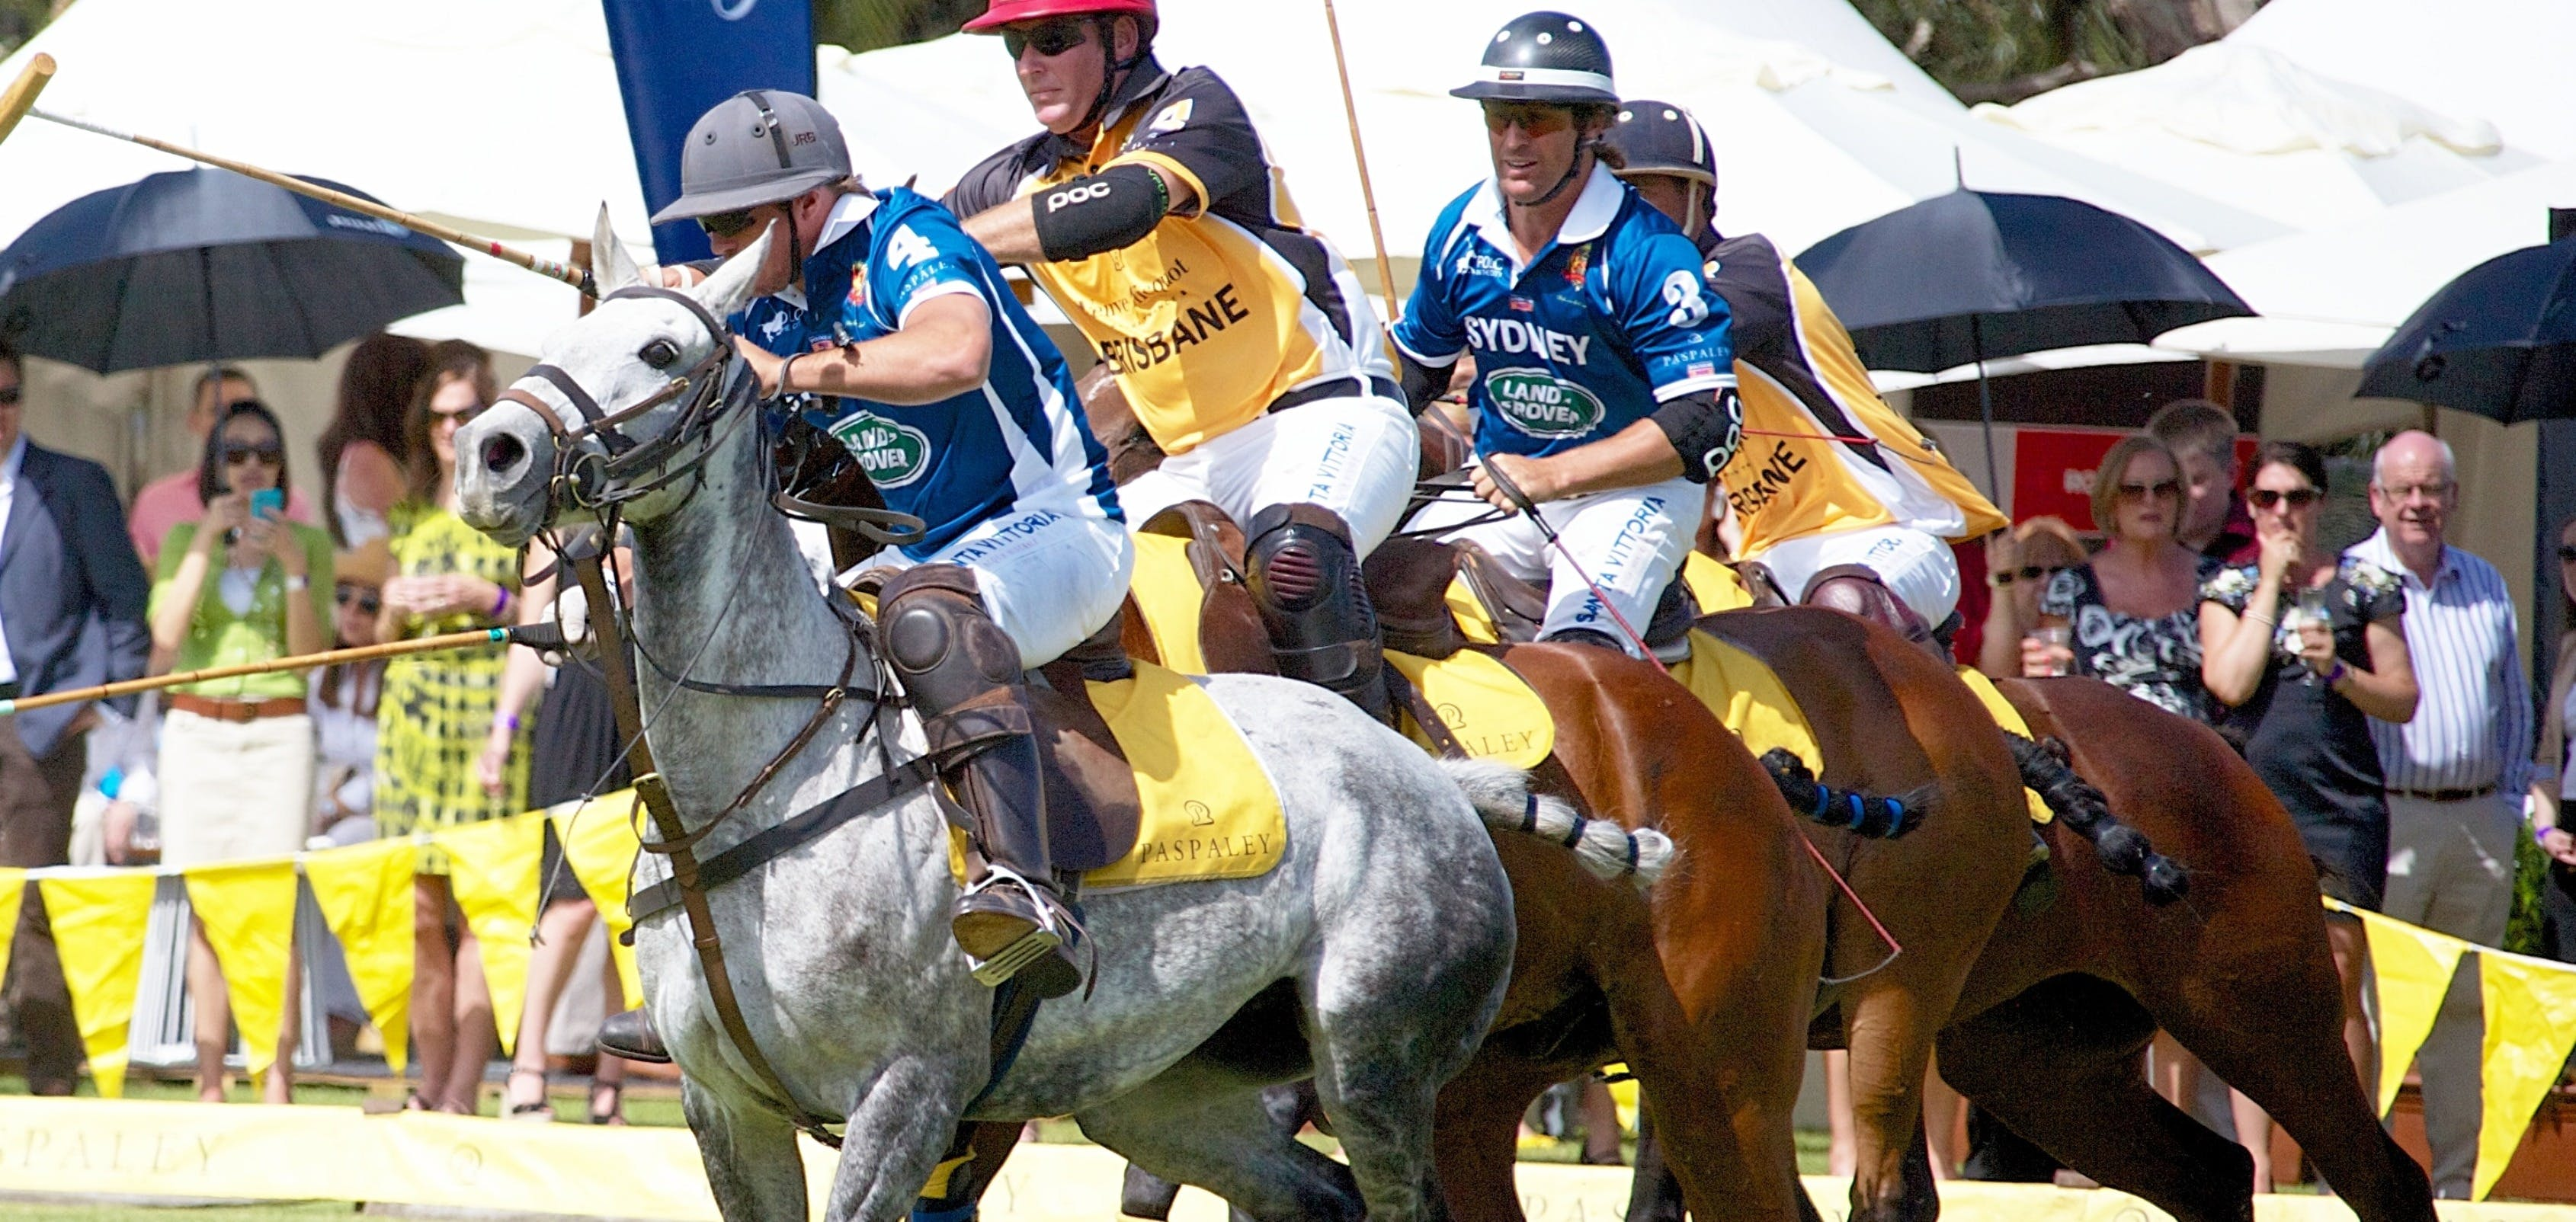 Land Rover Polo in the City Brisbane - Accommodation Sunshine Coast